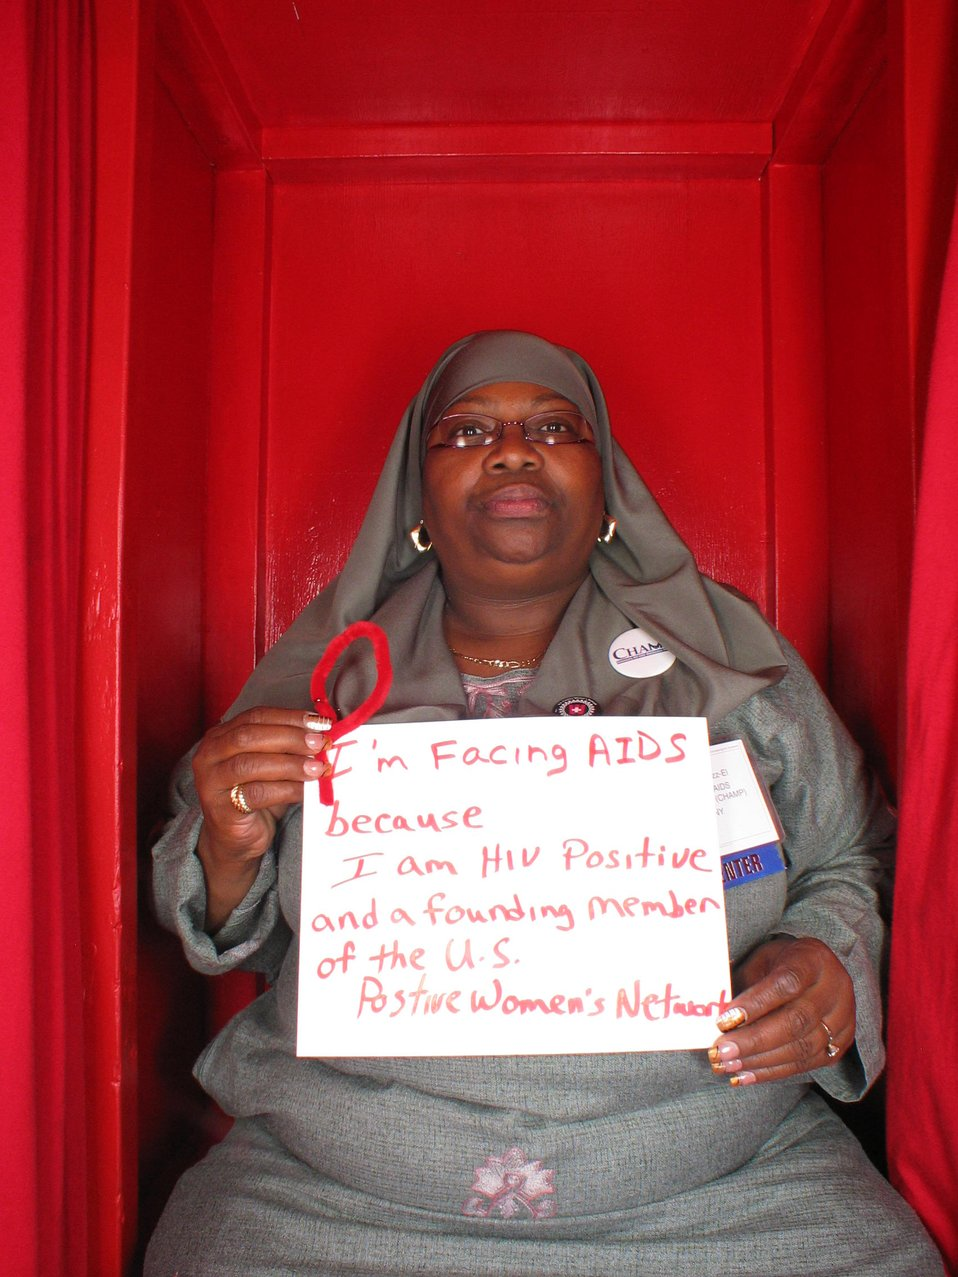 I am Facing AIDS because I am HIV positive and founding member of the US Positive Women's Network.